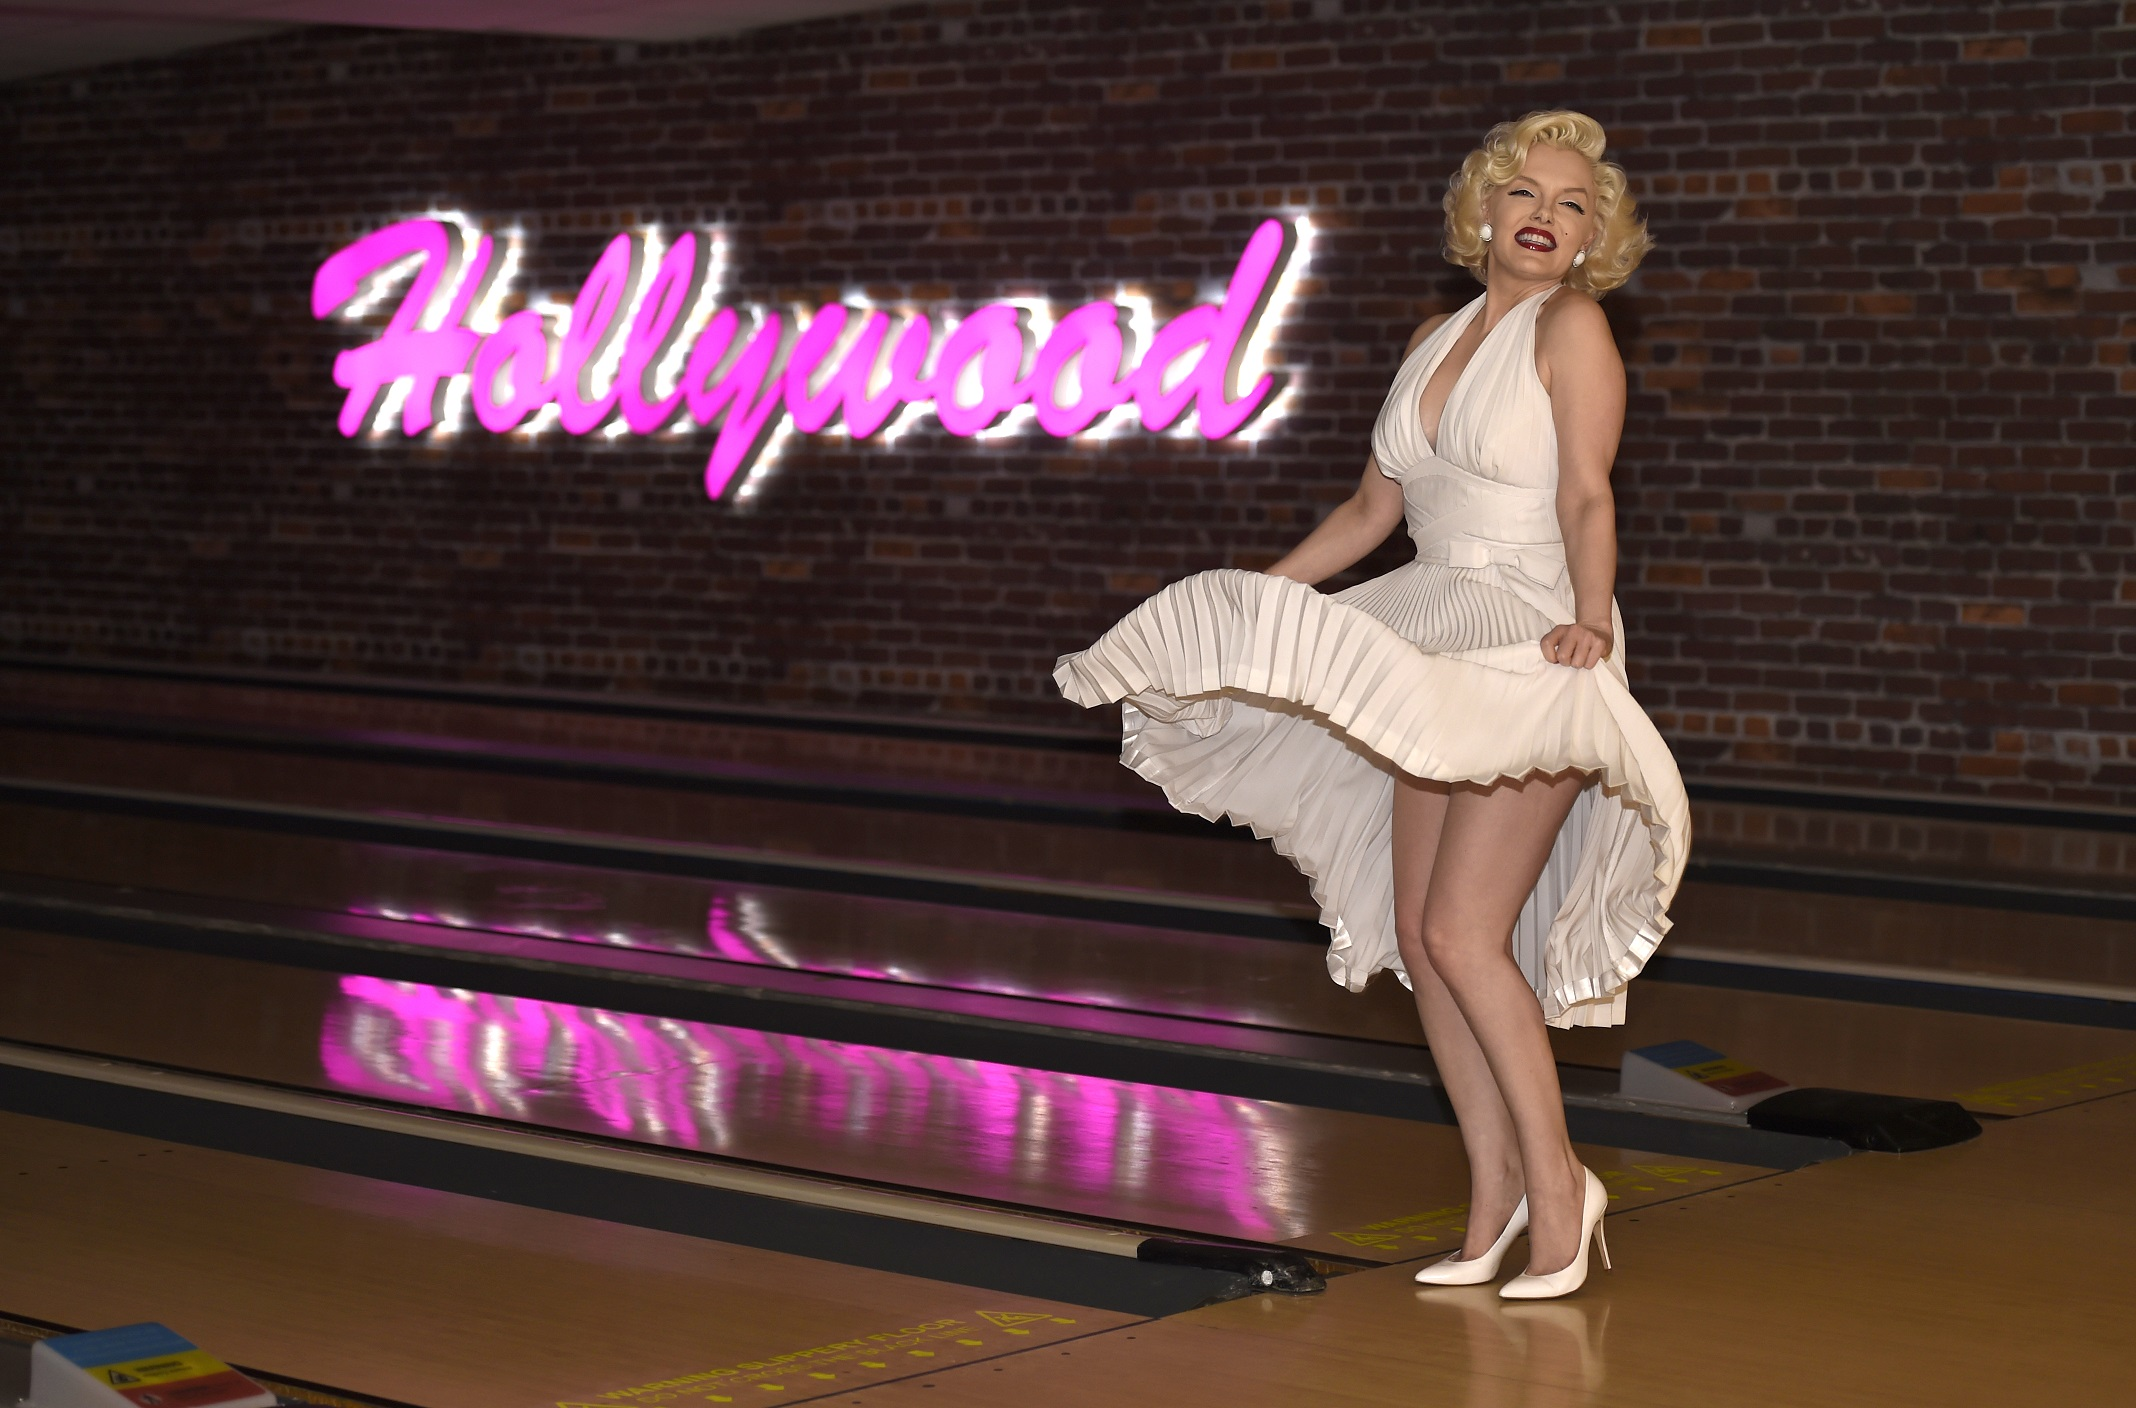 marilyn_monroe_officially_opens_the_lanes_at_hollywood_bowl_basingstoke1.jpg